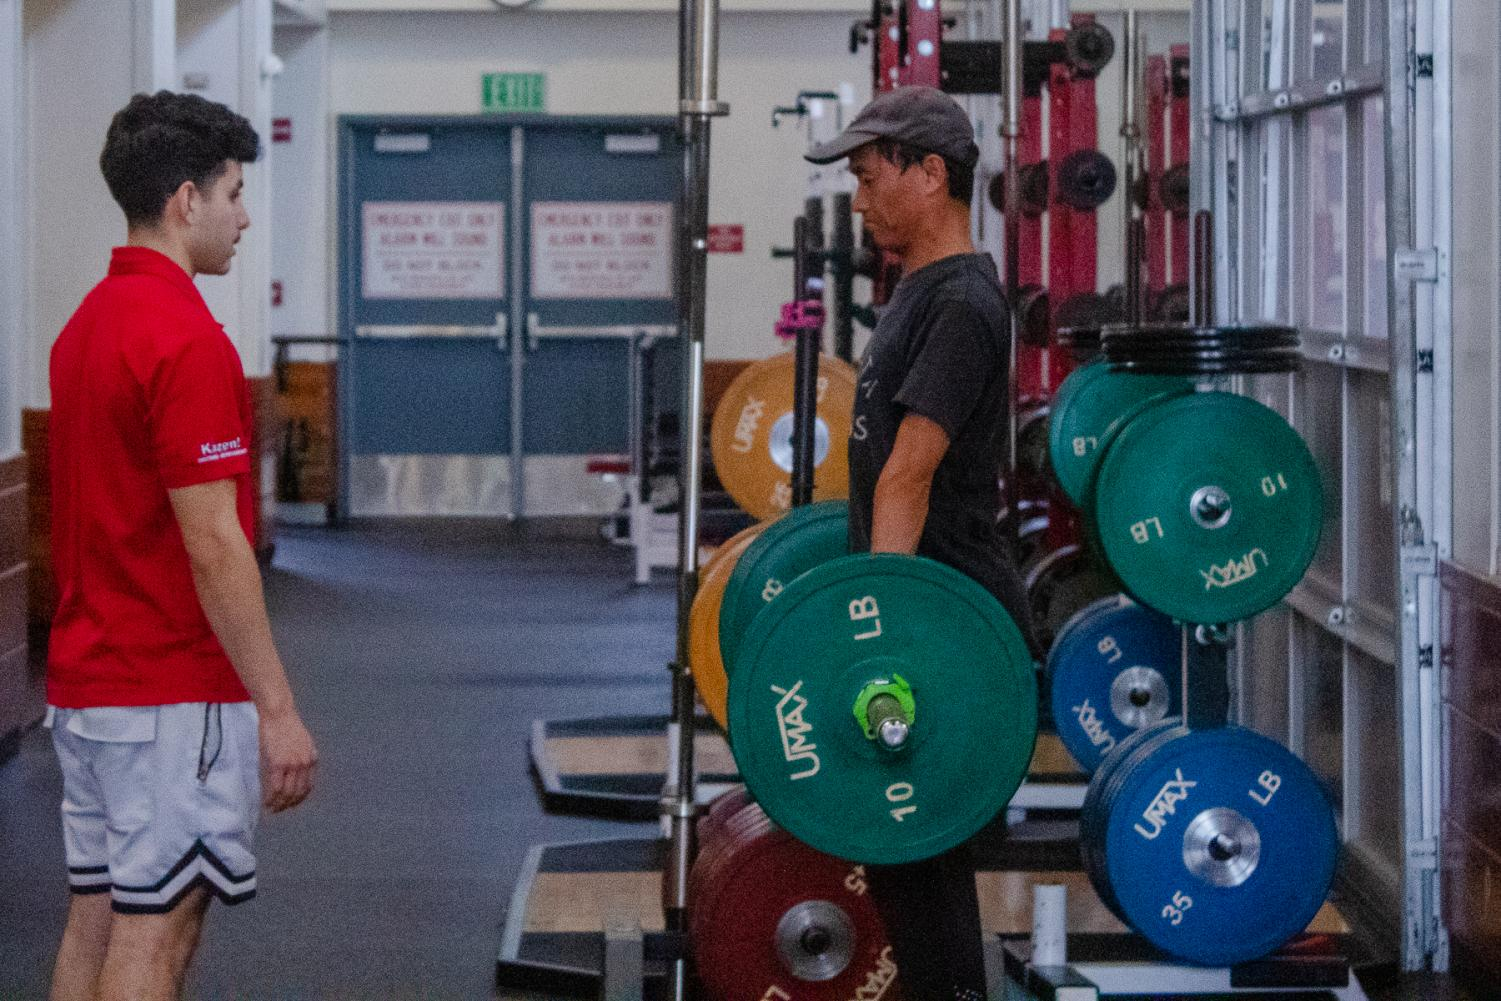 Joan Gao works on deadlift Position and stance under direction of Andrew Arnopole on Friday, Dec. 6, 2019, in the Life Fitness Center at City College in Santa Barbara, Calif.